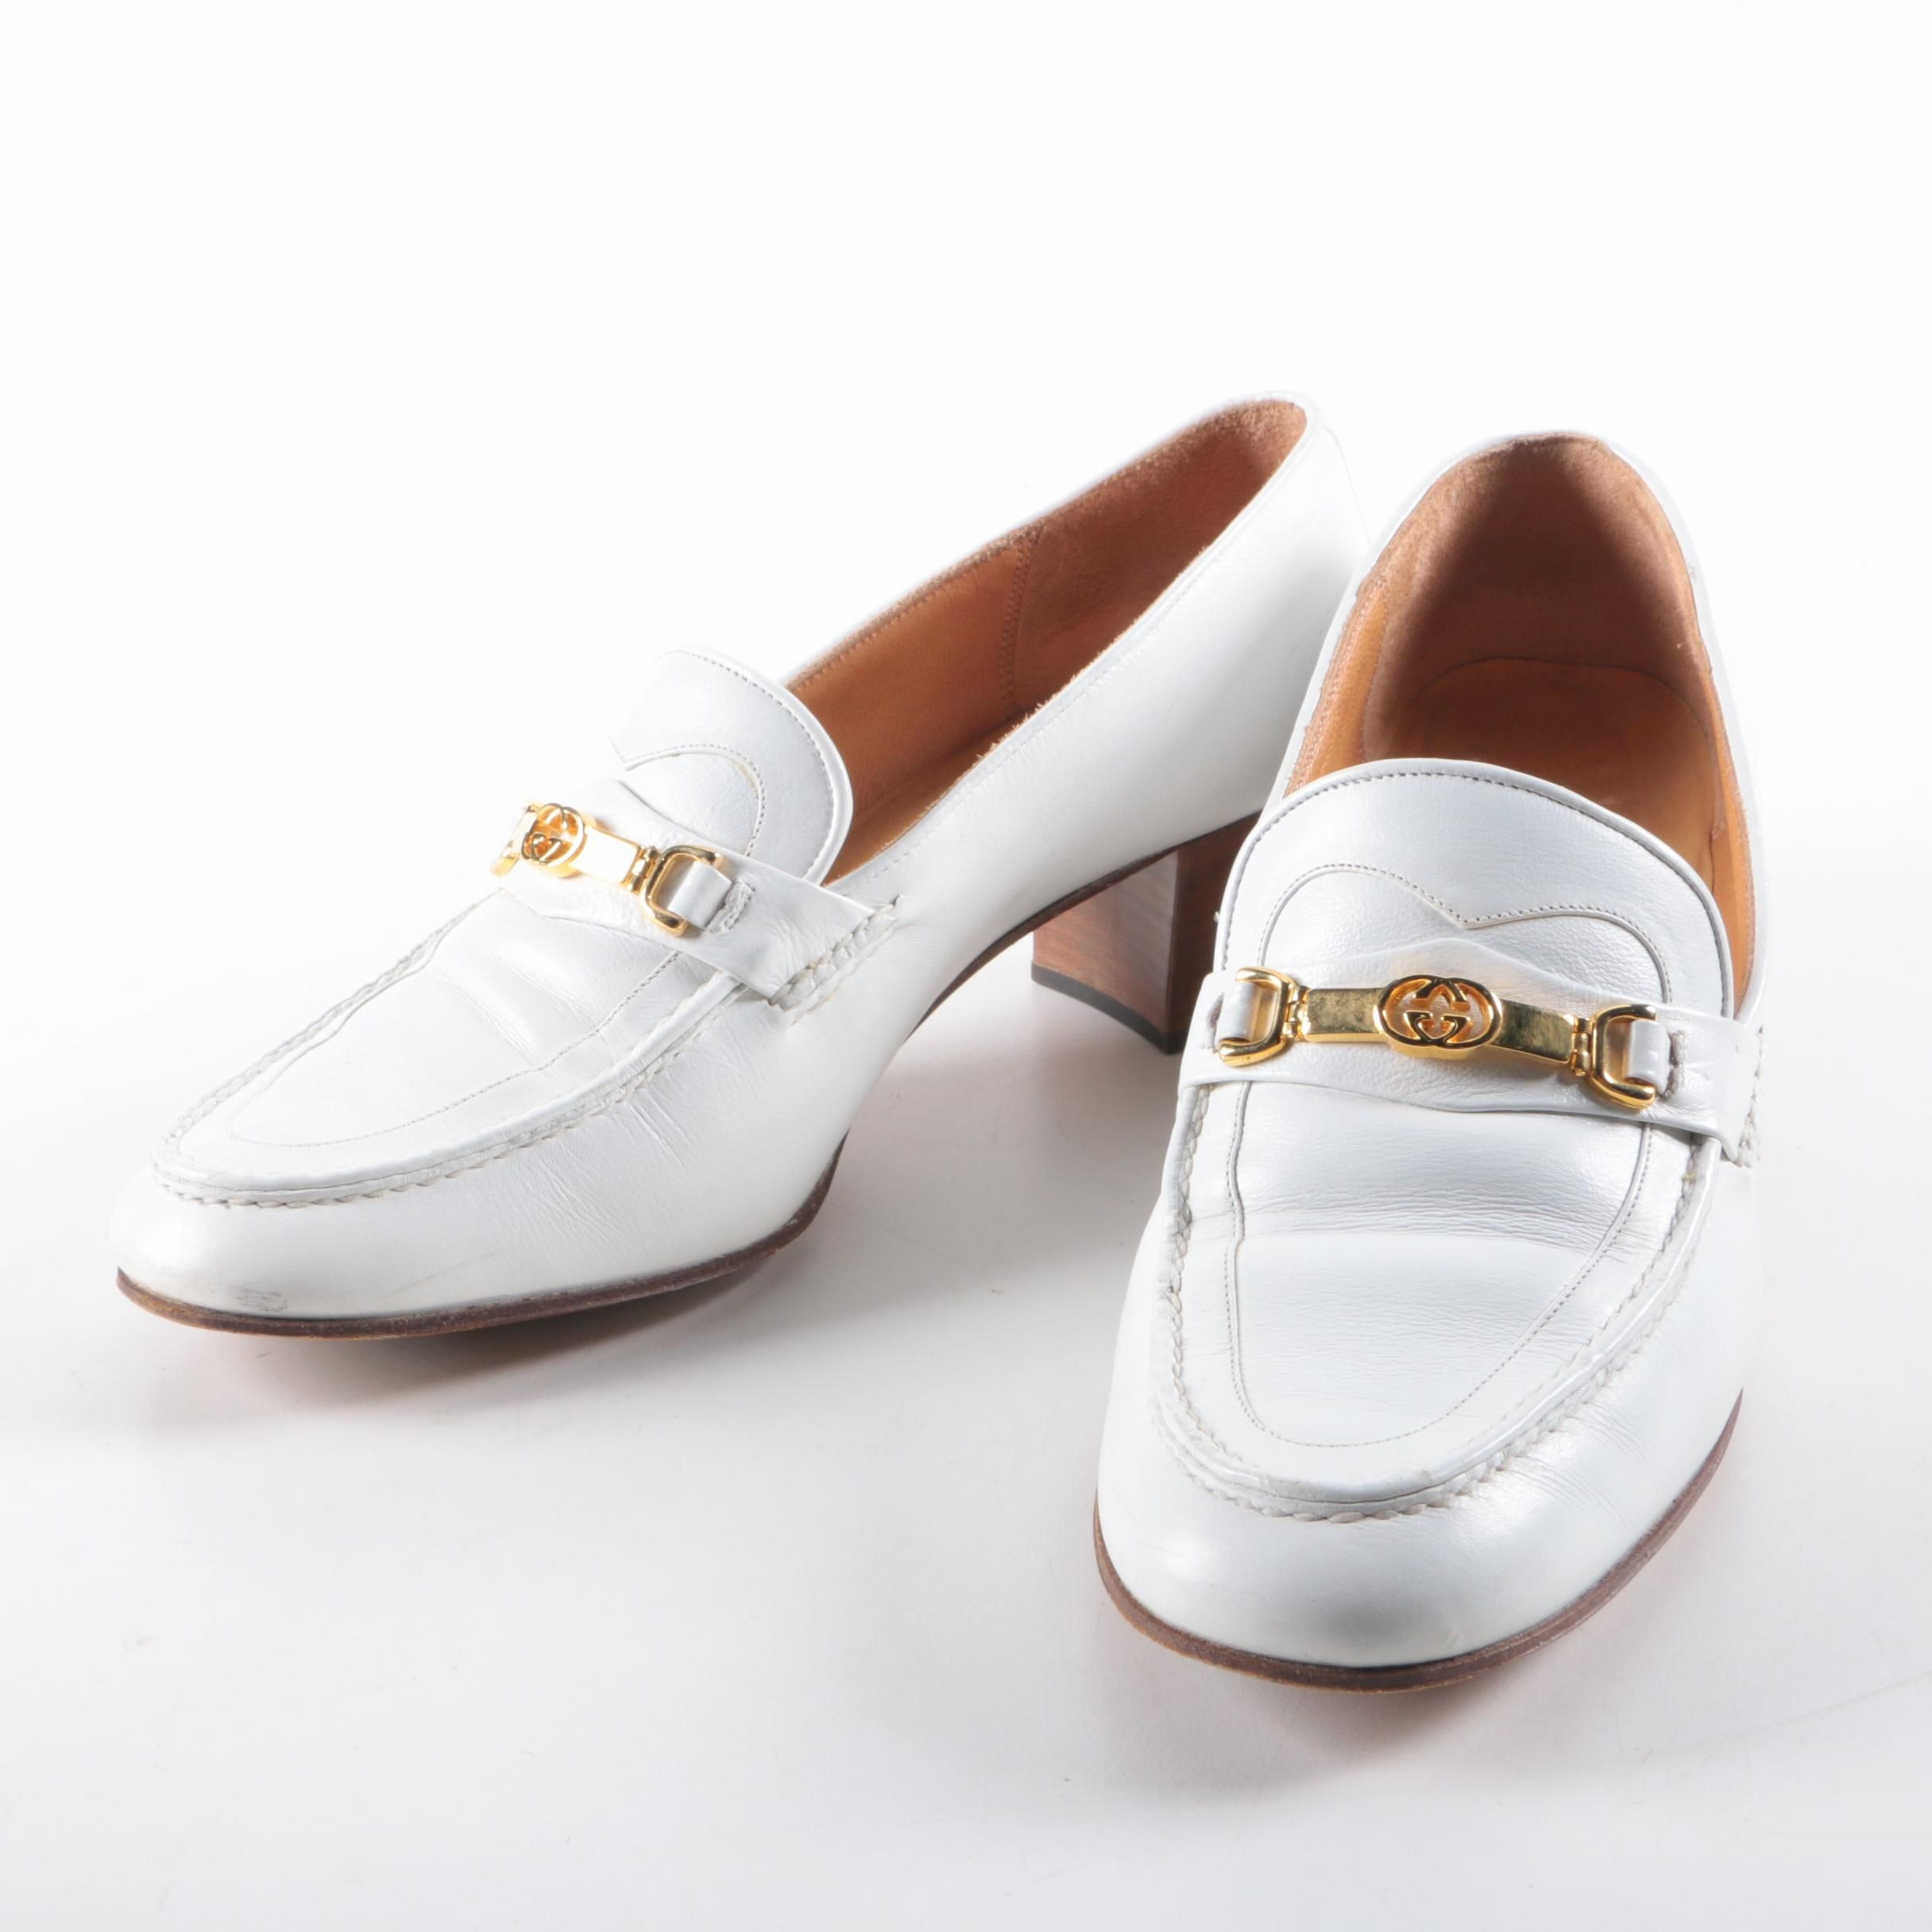 Circa 1960 Vintage Gucci White Leather High-Heeled Loafers